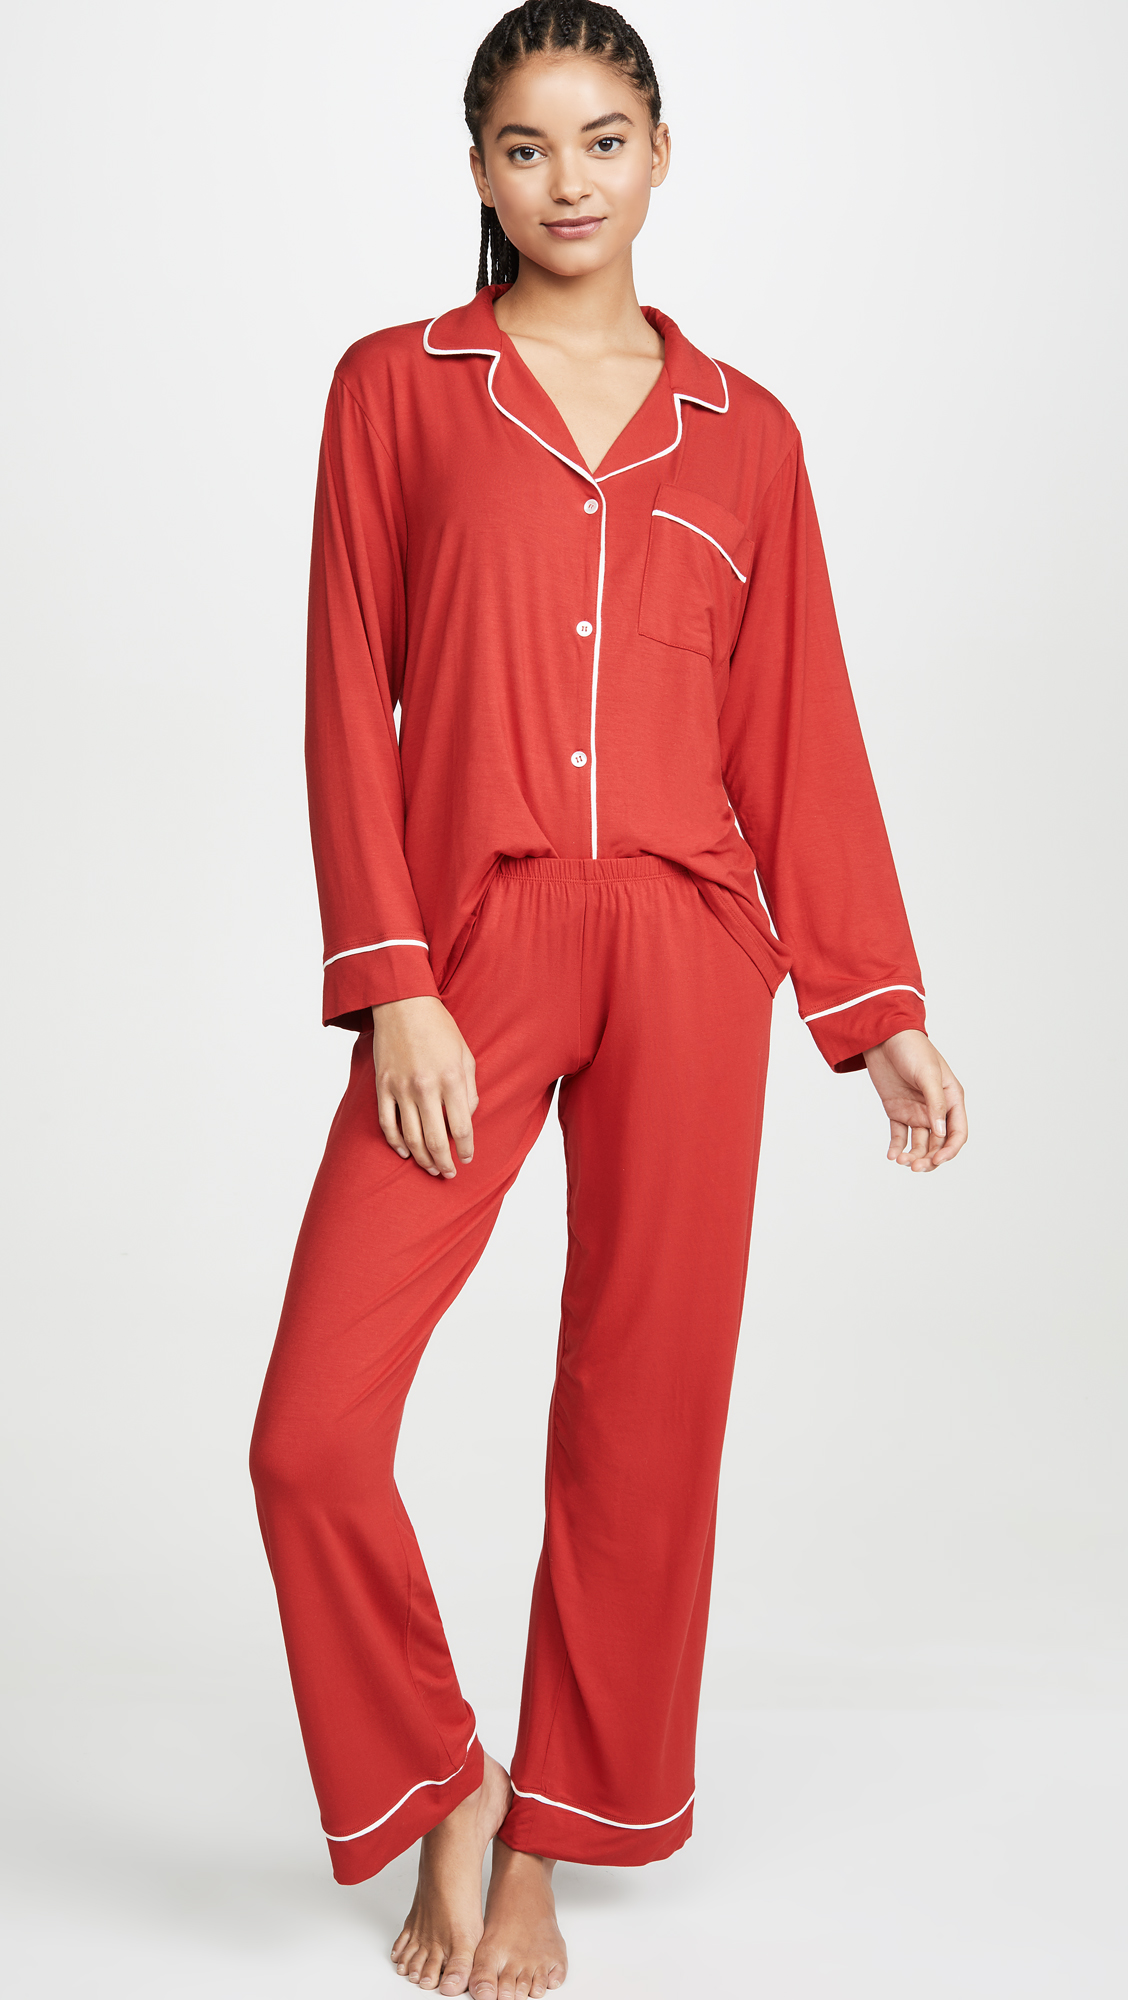 Red and Ivory PJ Set